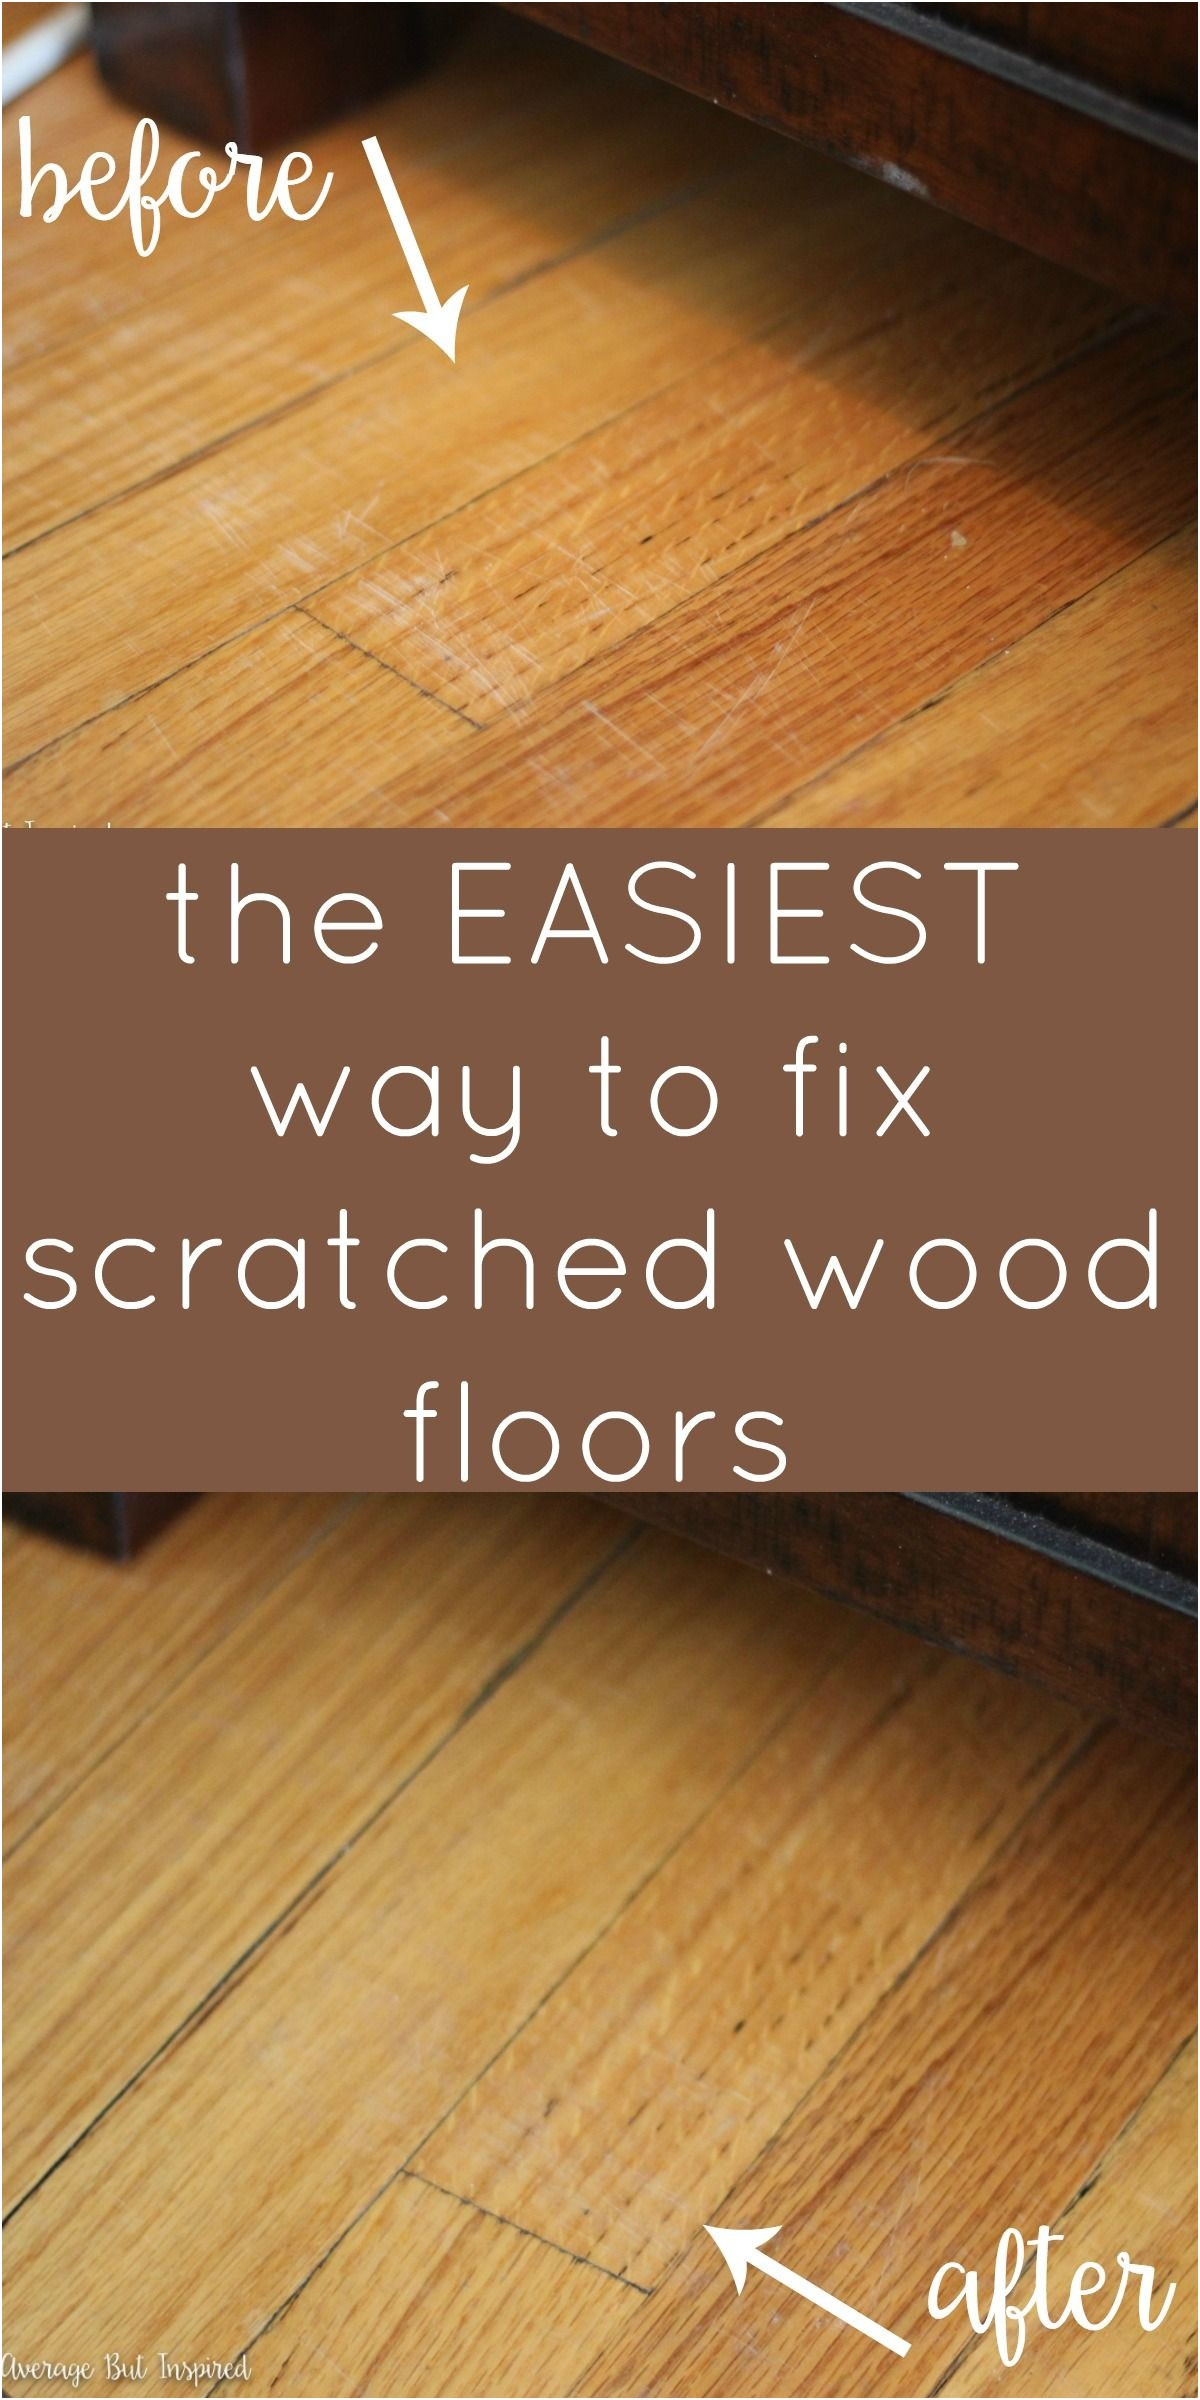 average cost of hardwood floors of average cost of new flooring flooring design in average cost of new flooring best of how to fix scratched hardwood floors in no time